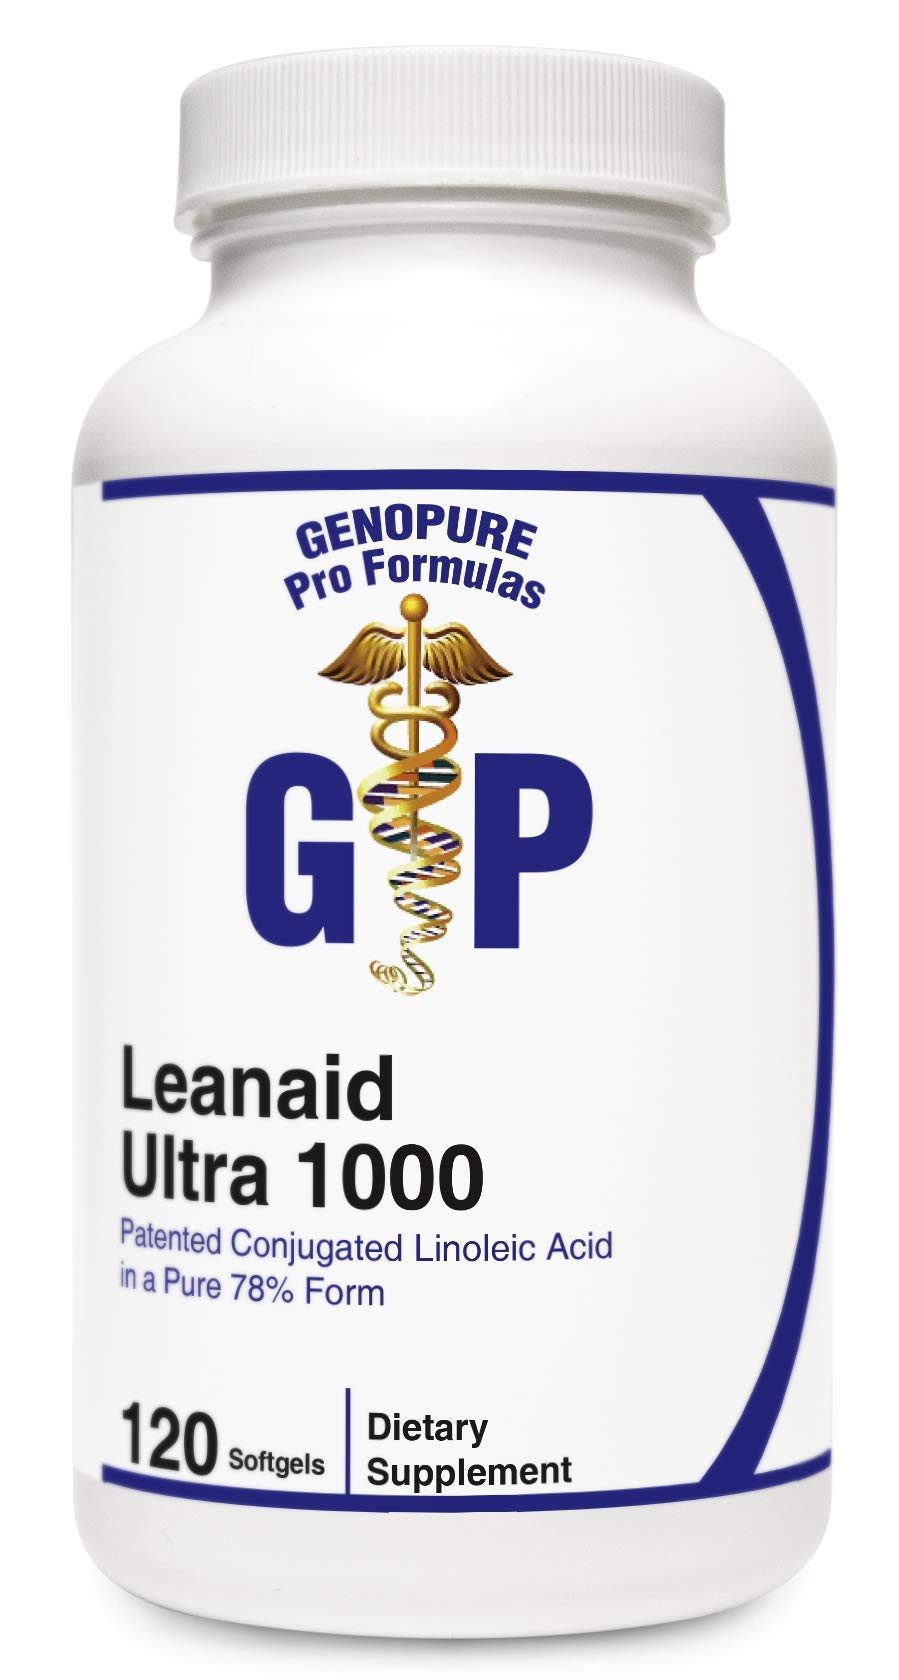 LEANAID Ultra 1000 (Fat Burner)